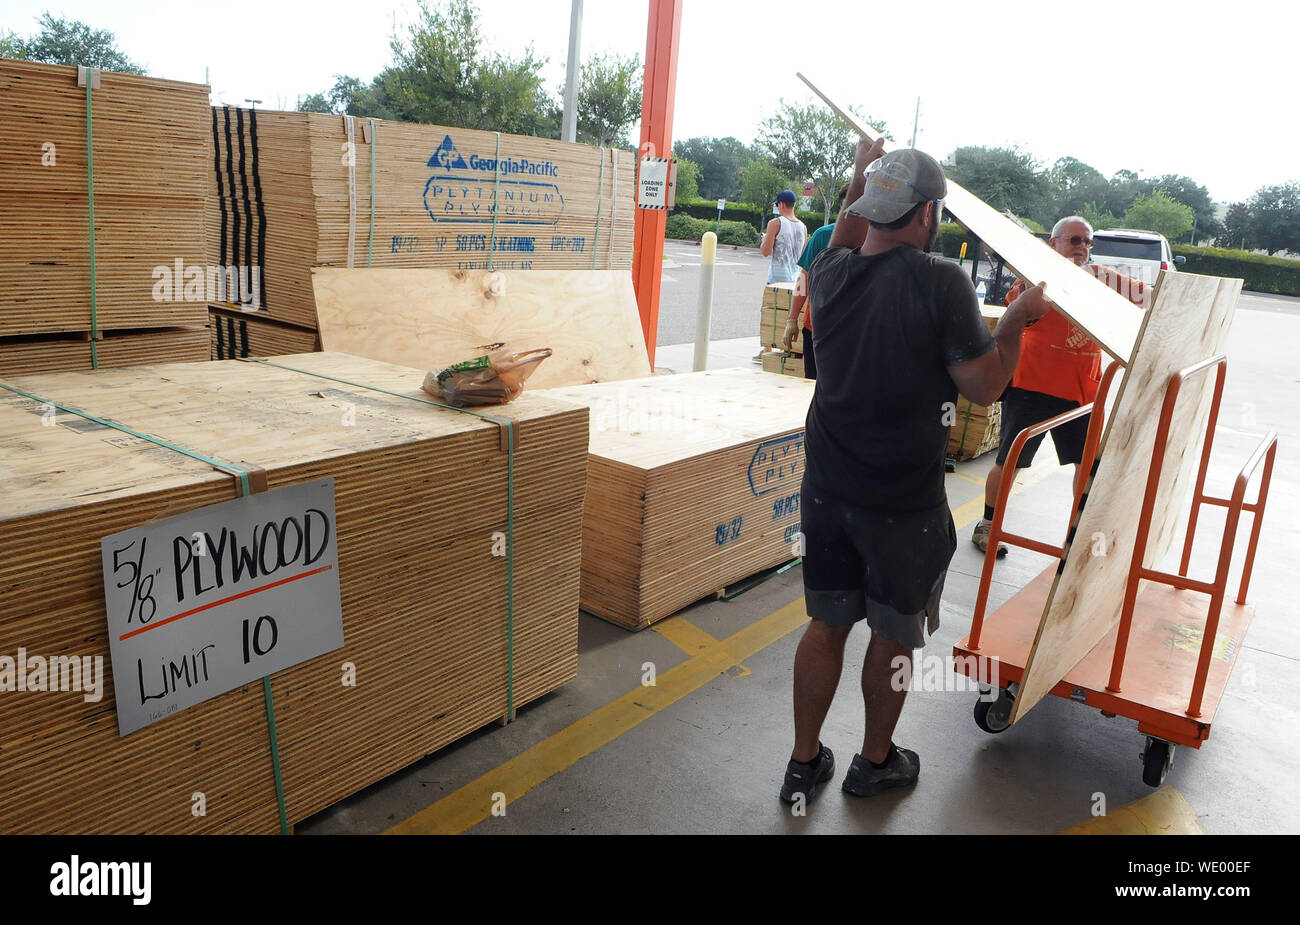 Titusville, United States. 29th Aug, 2019. A customer loads sheets of plywood into a cart at a Home Depot store in preparation for the arrival of Hurricane Dorian which is expected to become a Category 4 hurricane before making landfall in Florida on Labor Day. Credit: SOPA Images Limited/Alamy Live News Stock Photo